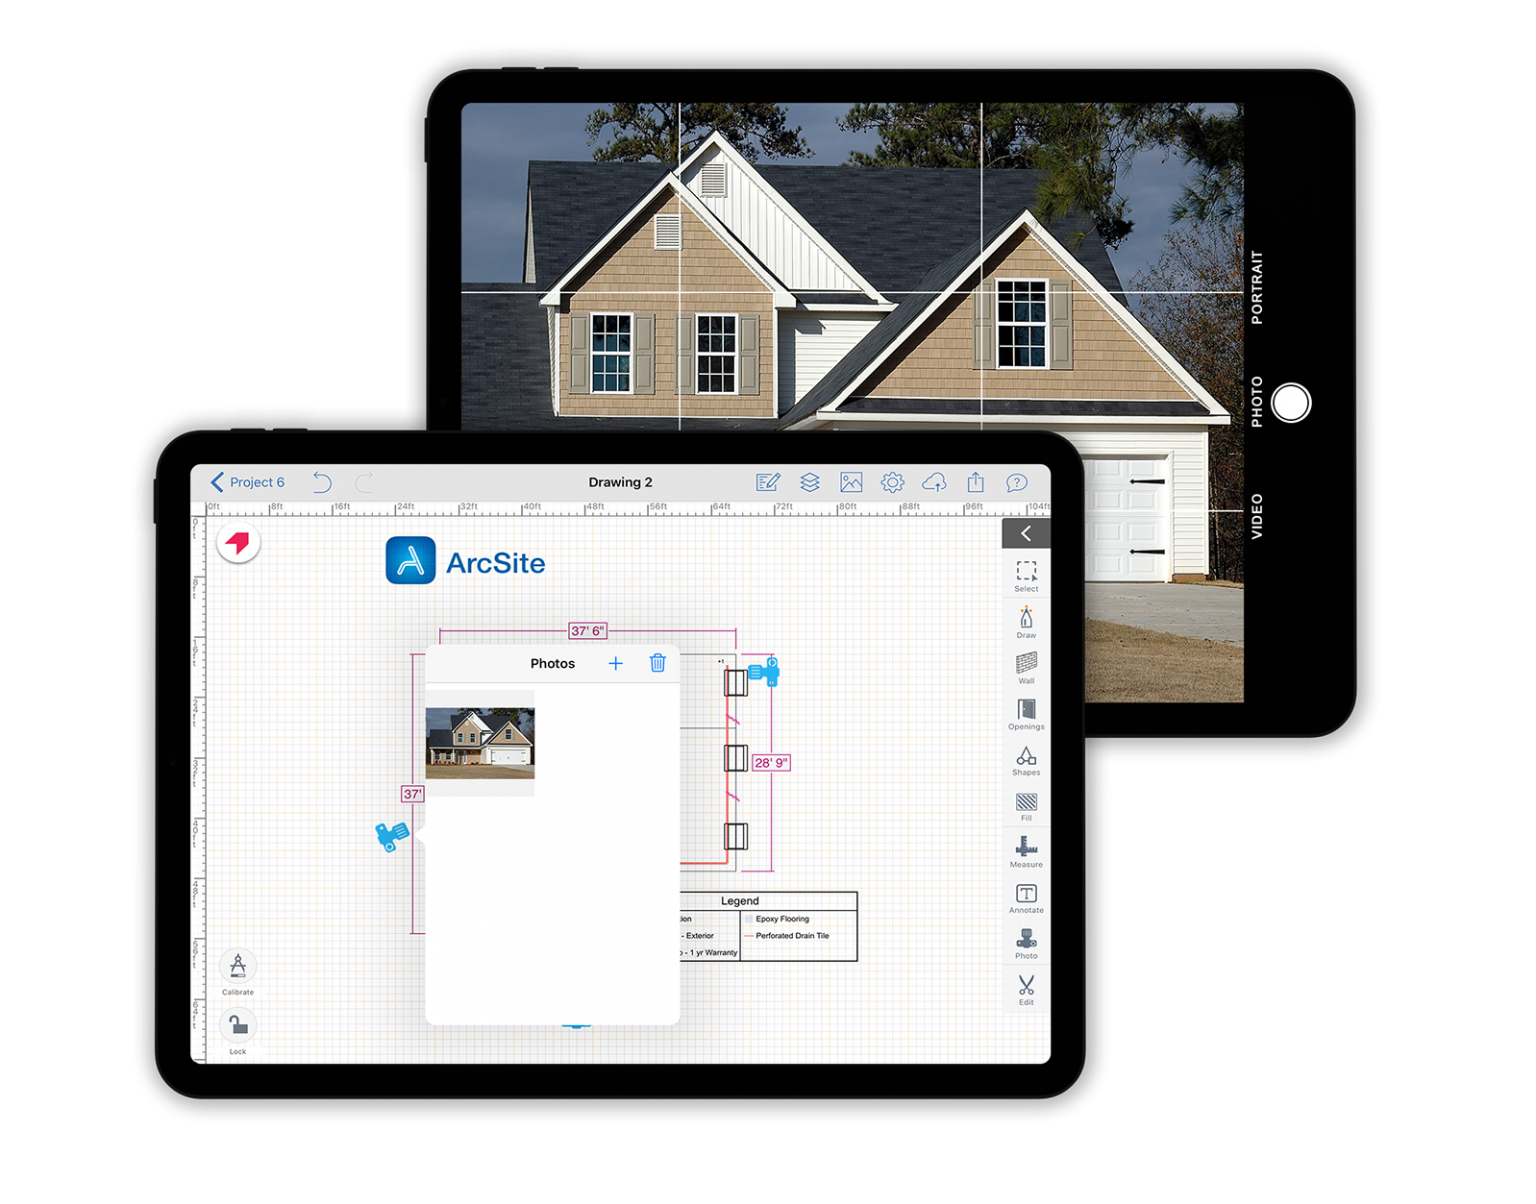 Take site photos from your ipad and directly embed them into your drawing